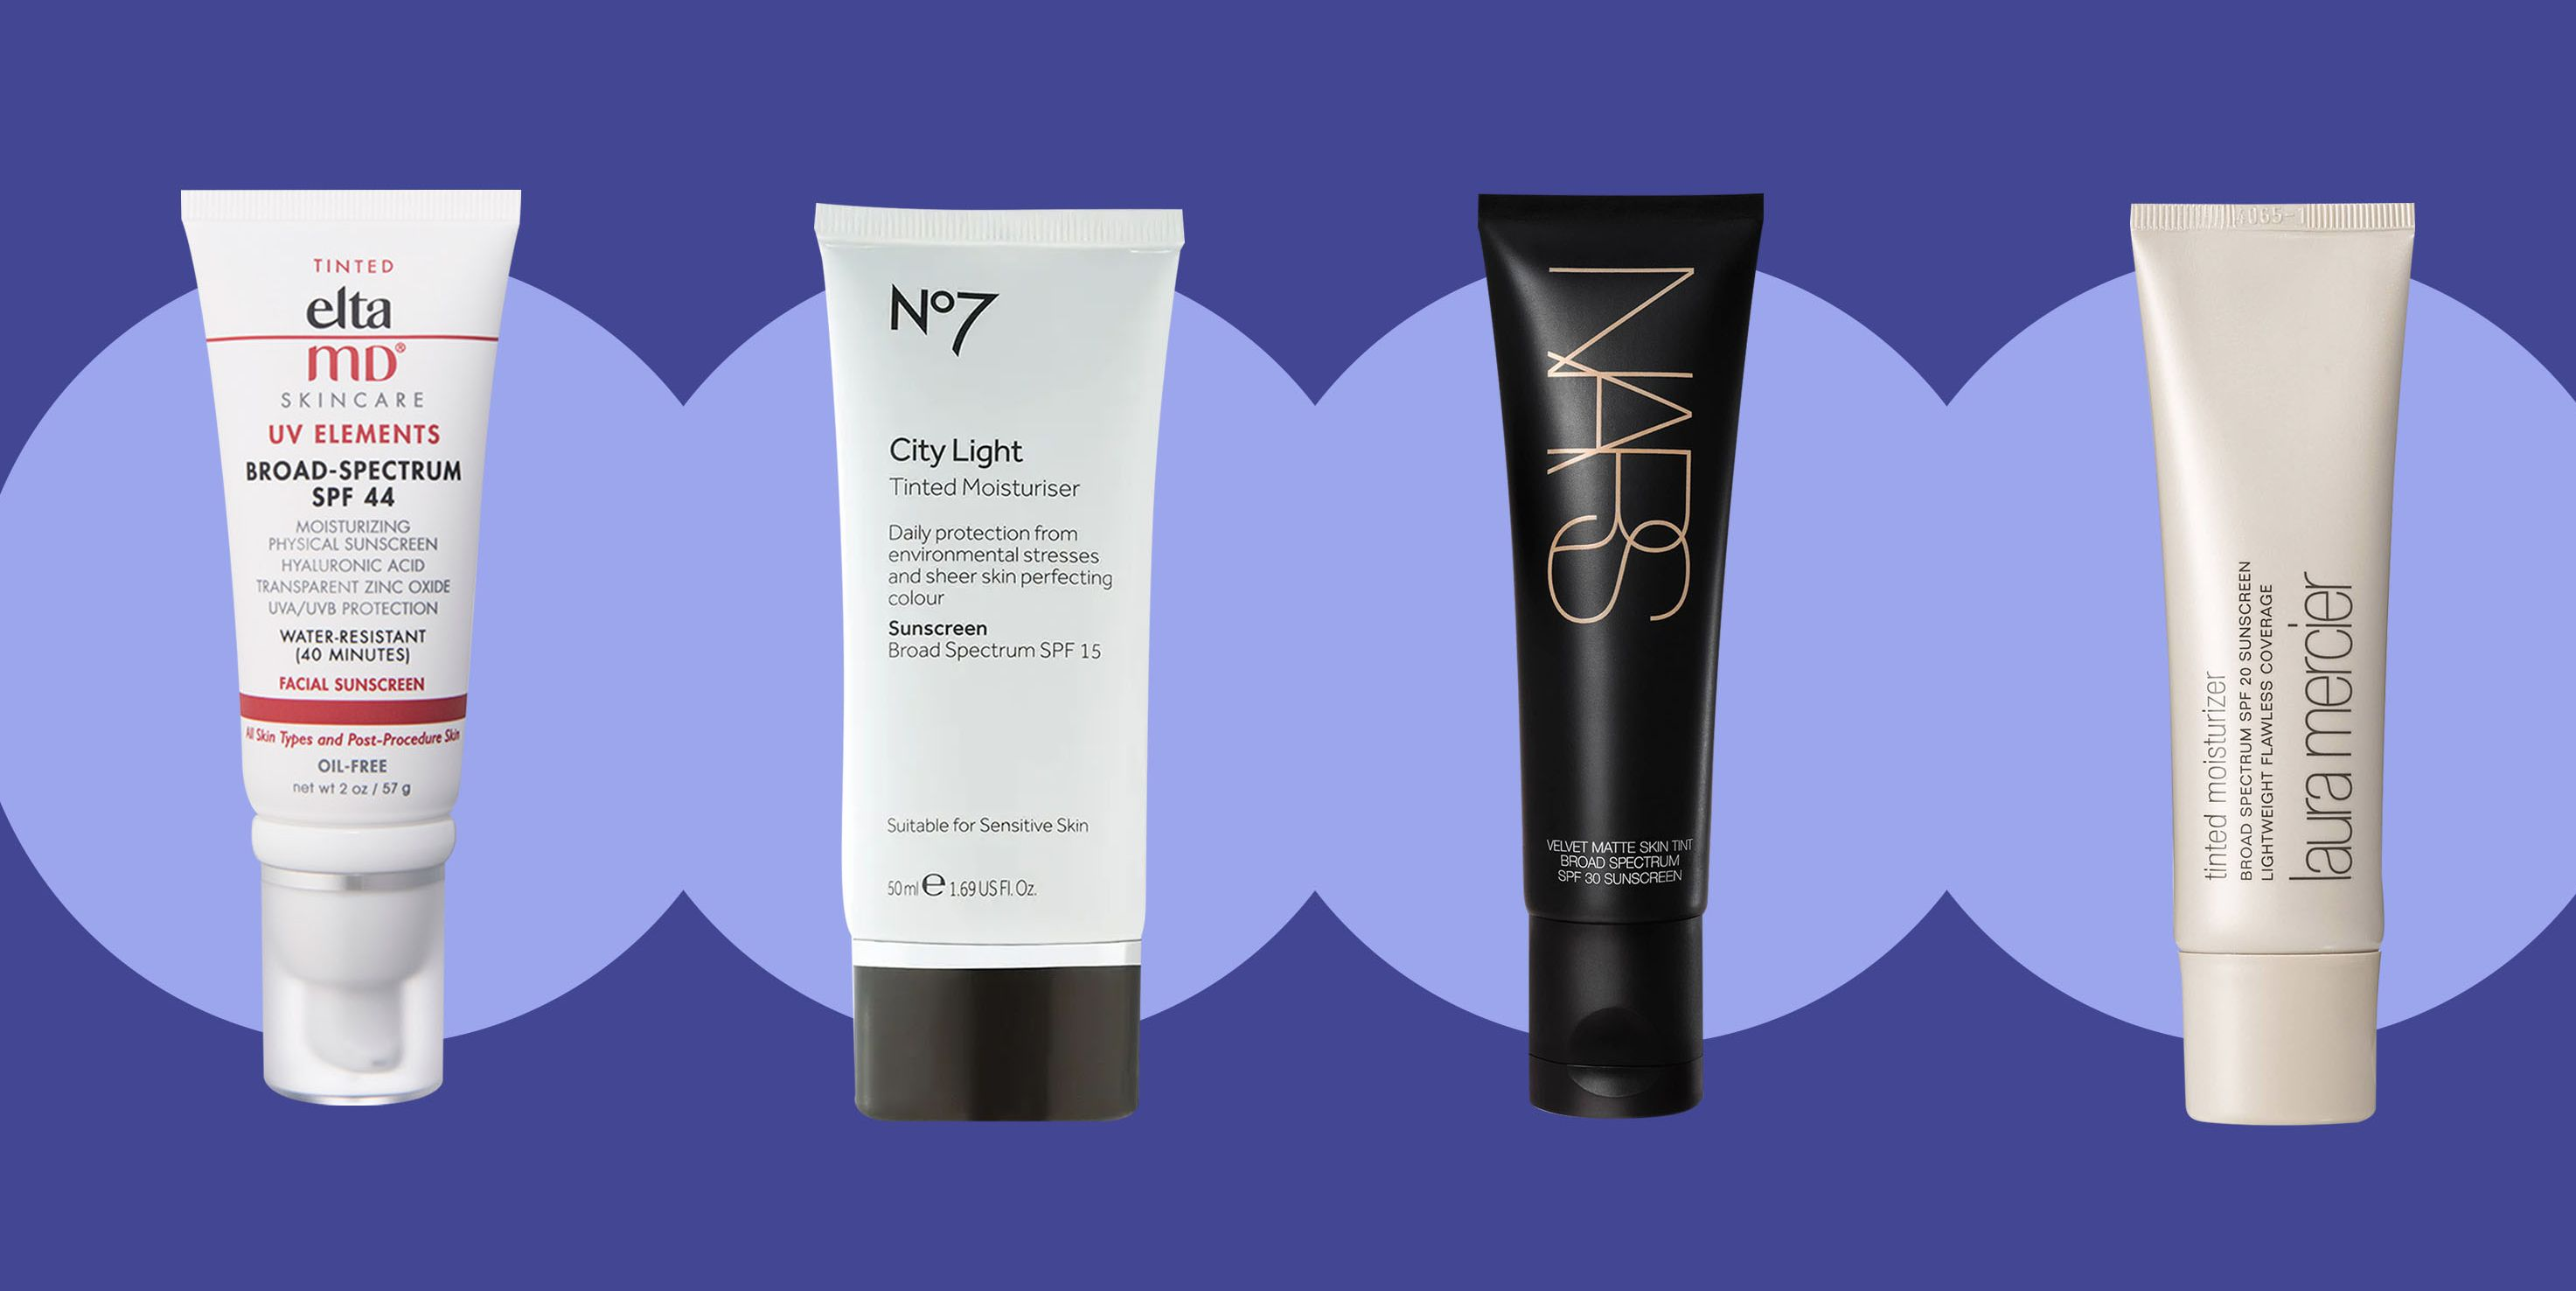 11 Best Tinted Moisturizers, According to Dermatologists and Makeup Artists